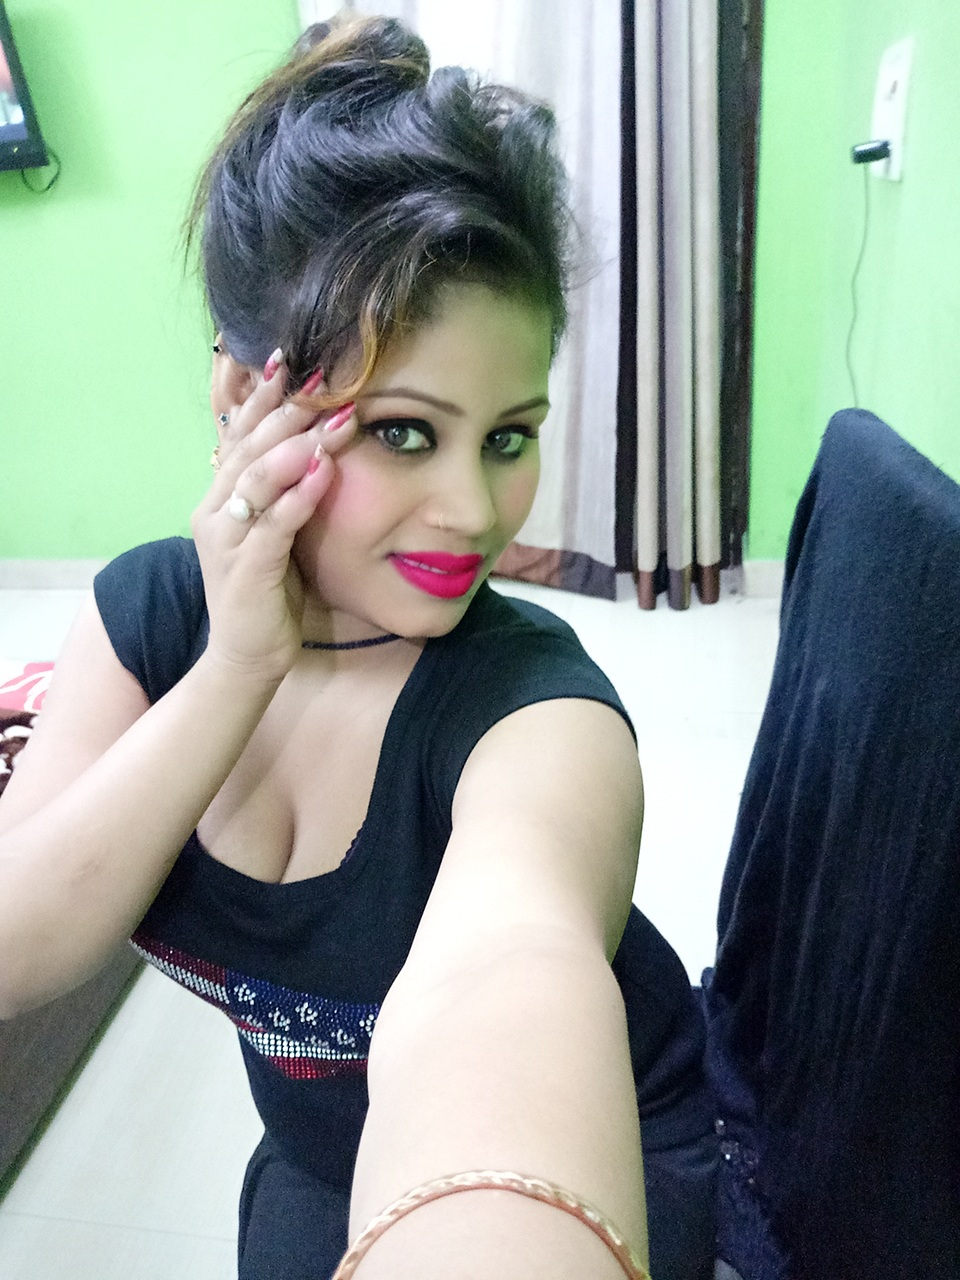 Call Girls In Maviya Nagar Saket Call Girls In Civil Lines Call Girls In GTB Nagar